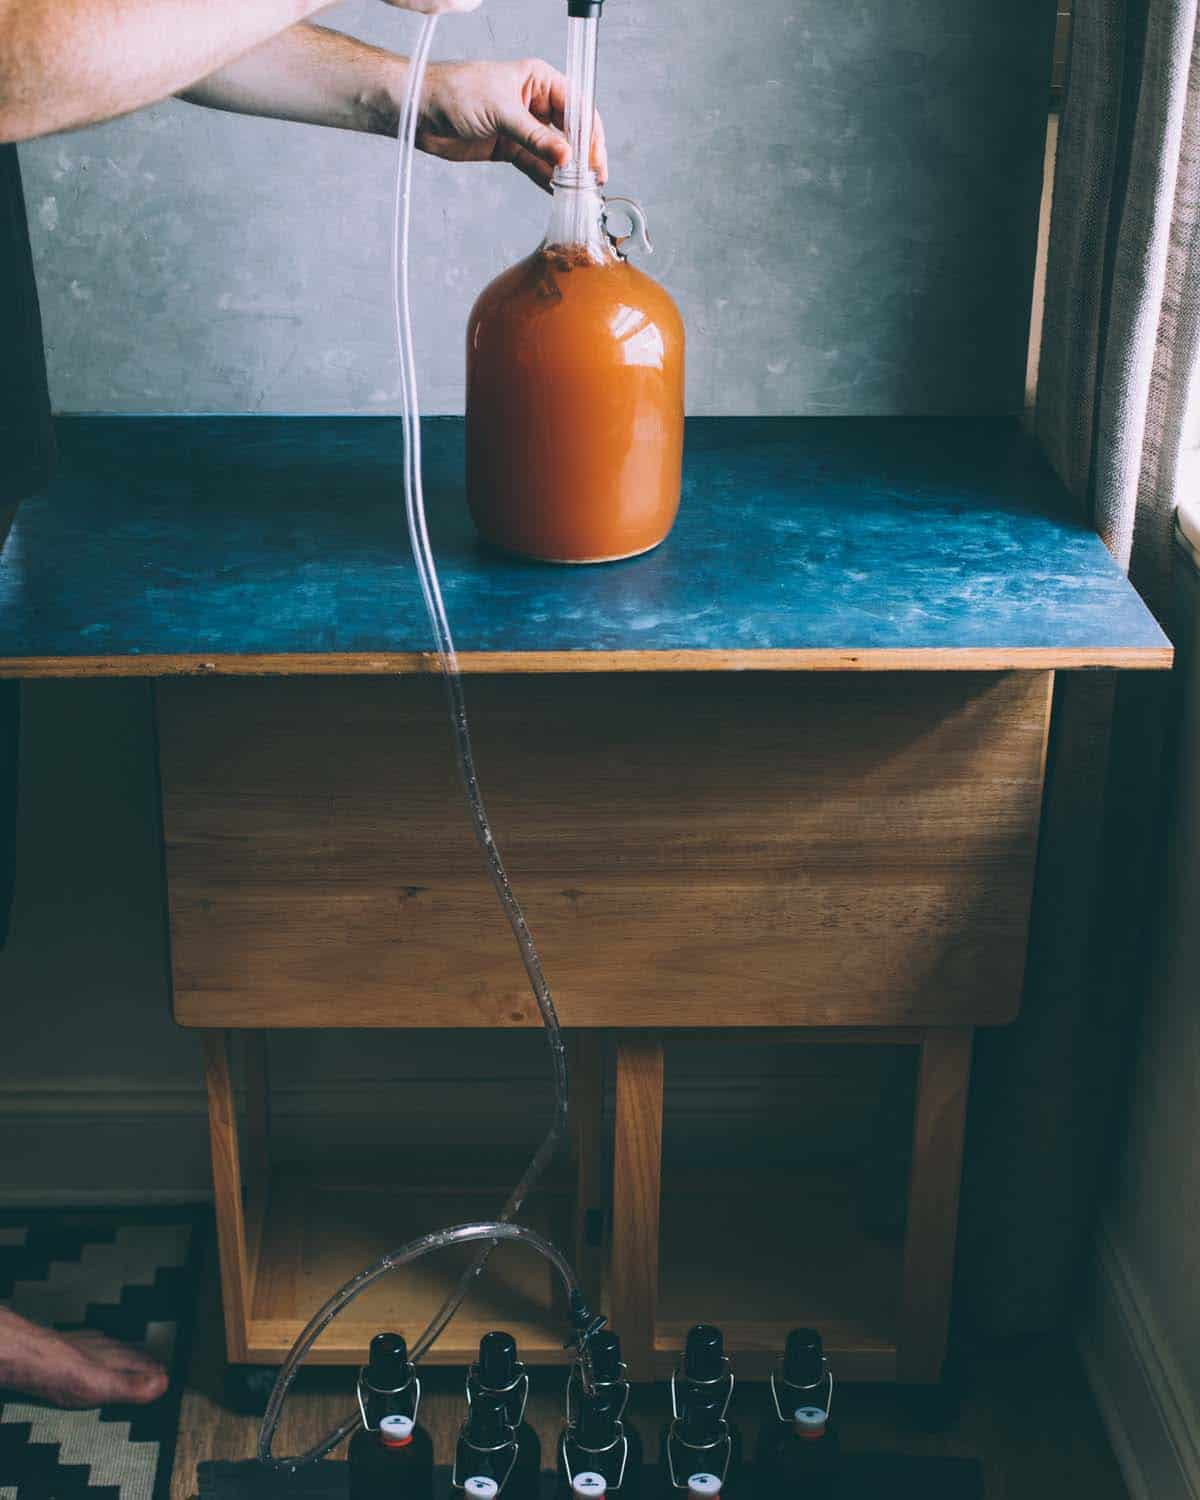 a hand holding the auto siphon in a jug of cider with tubing going down to the bottles on the floor